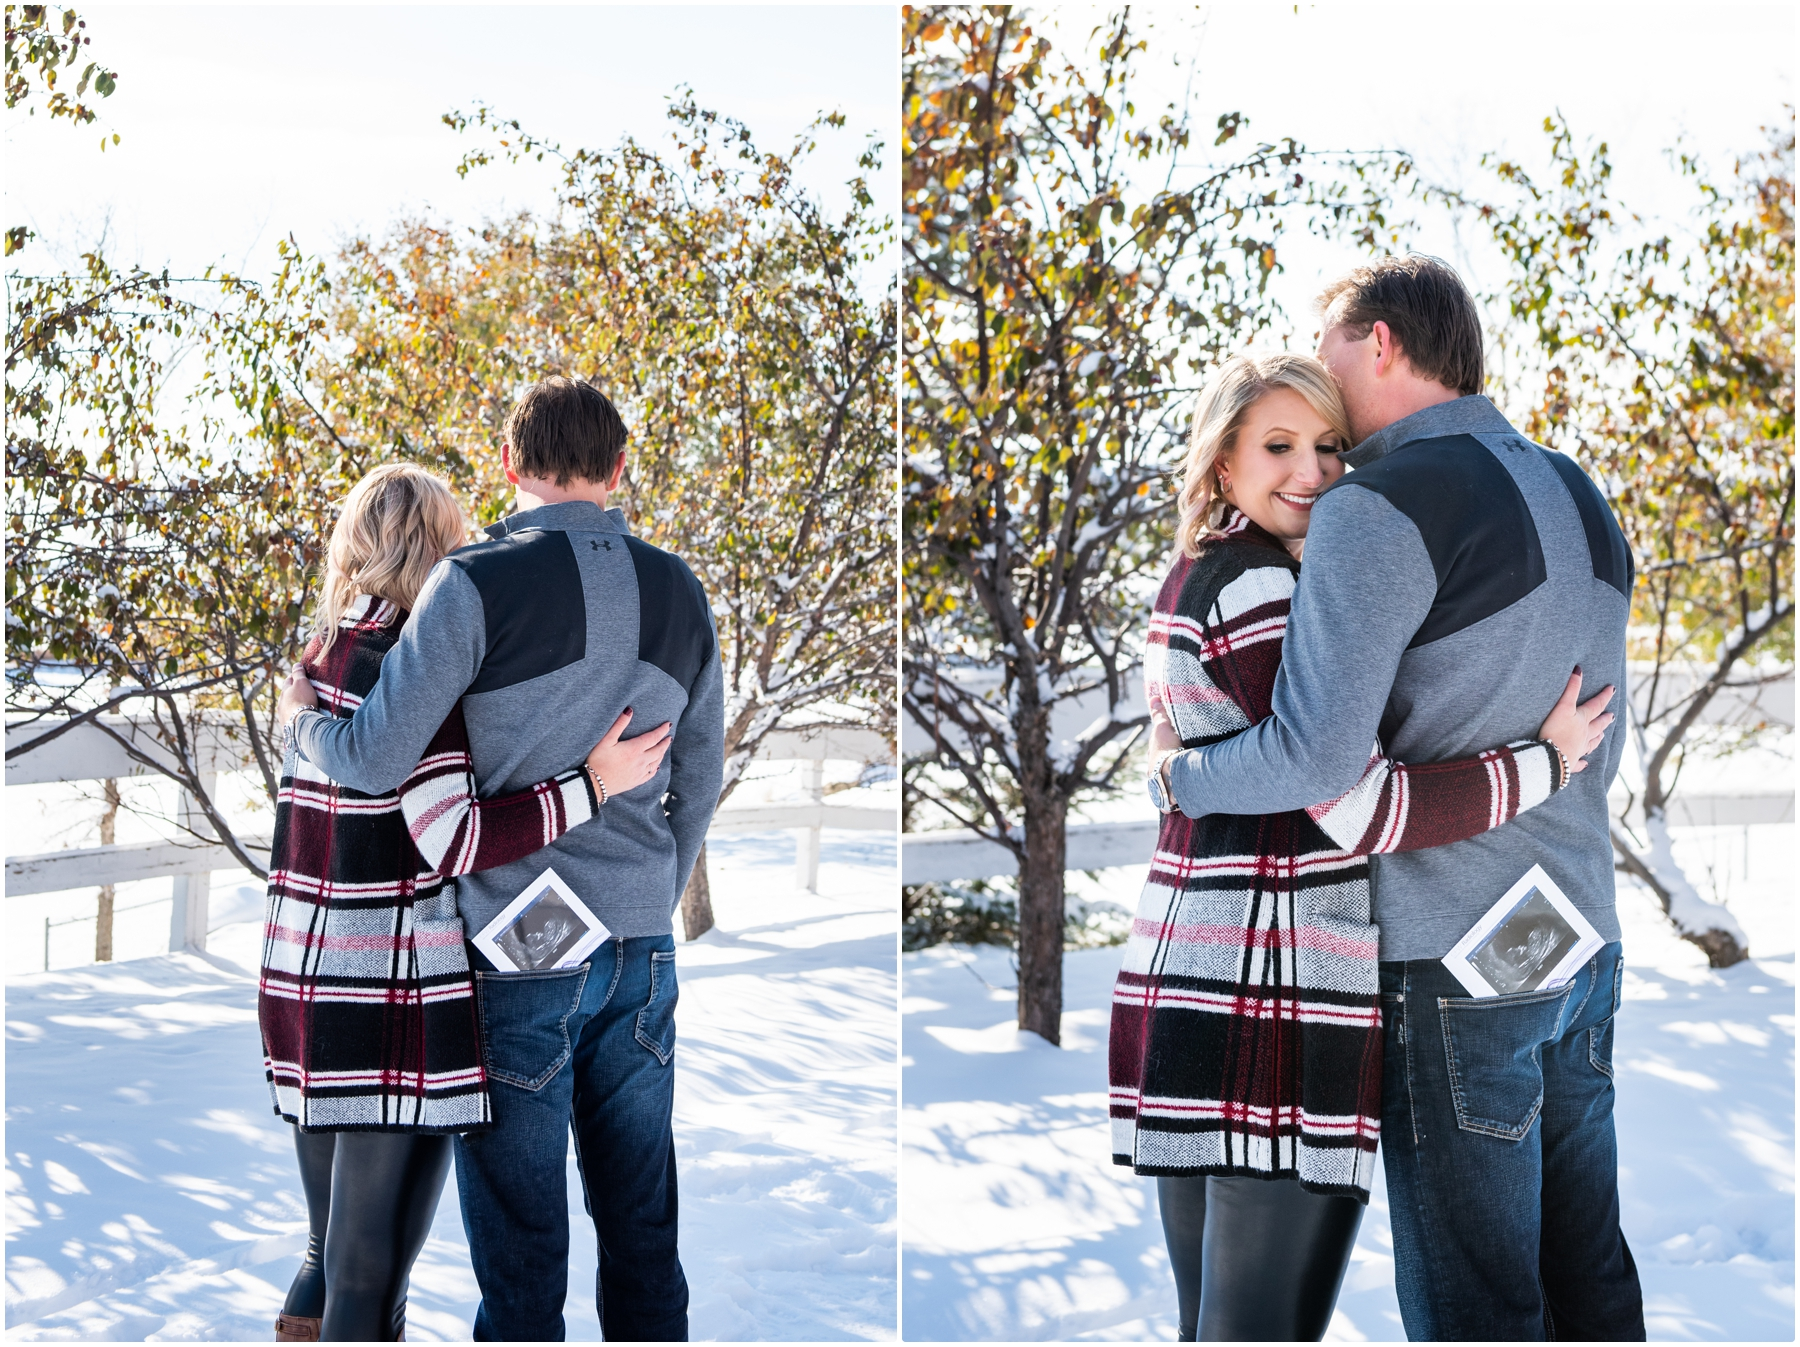 Calgary Pregnancy Announcement Photographer